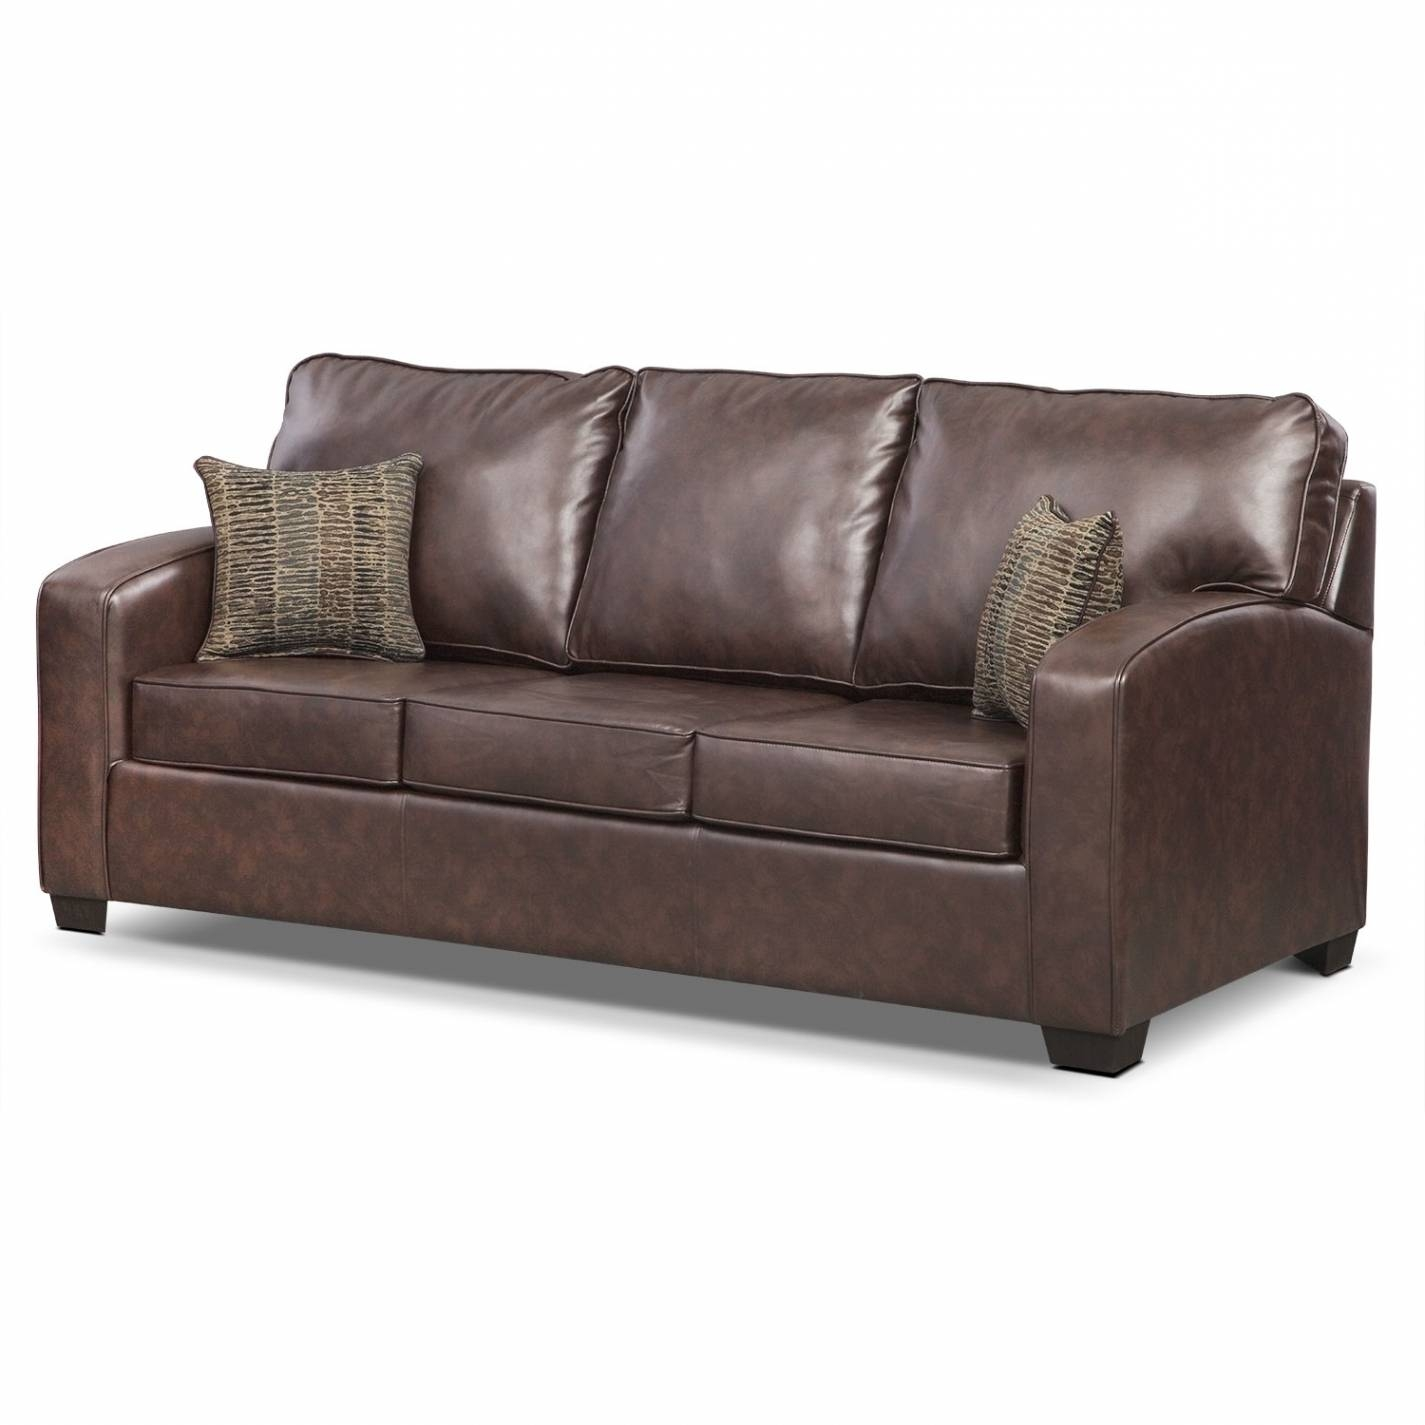 30 s King Size Sleeper Sofa Sectional